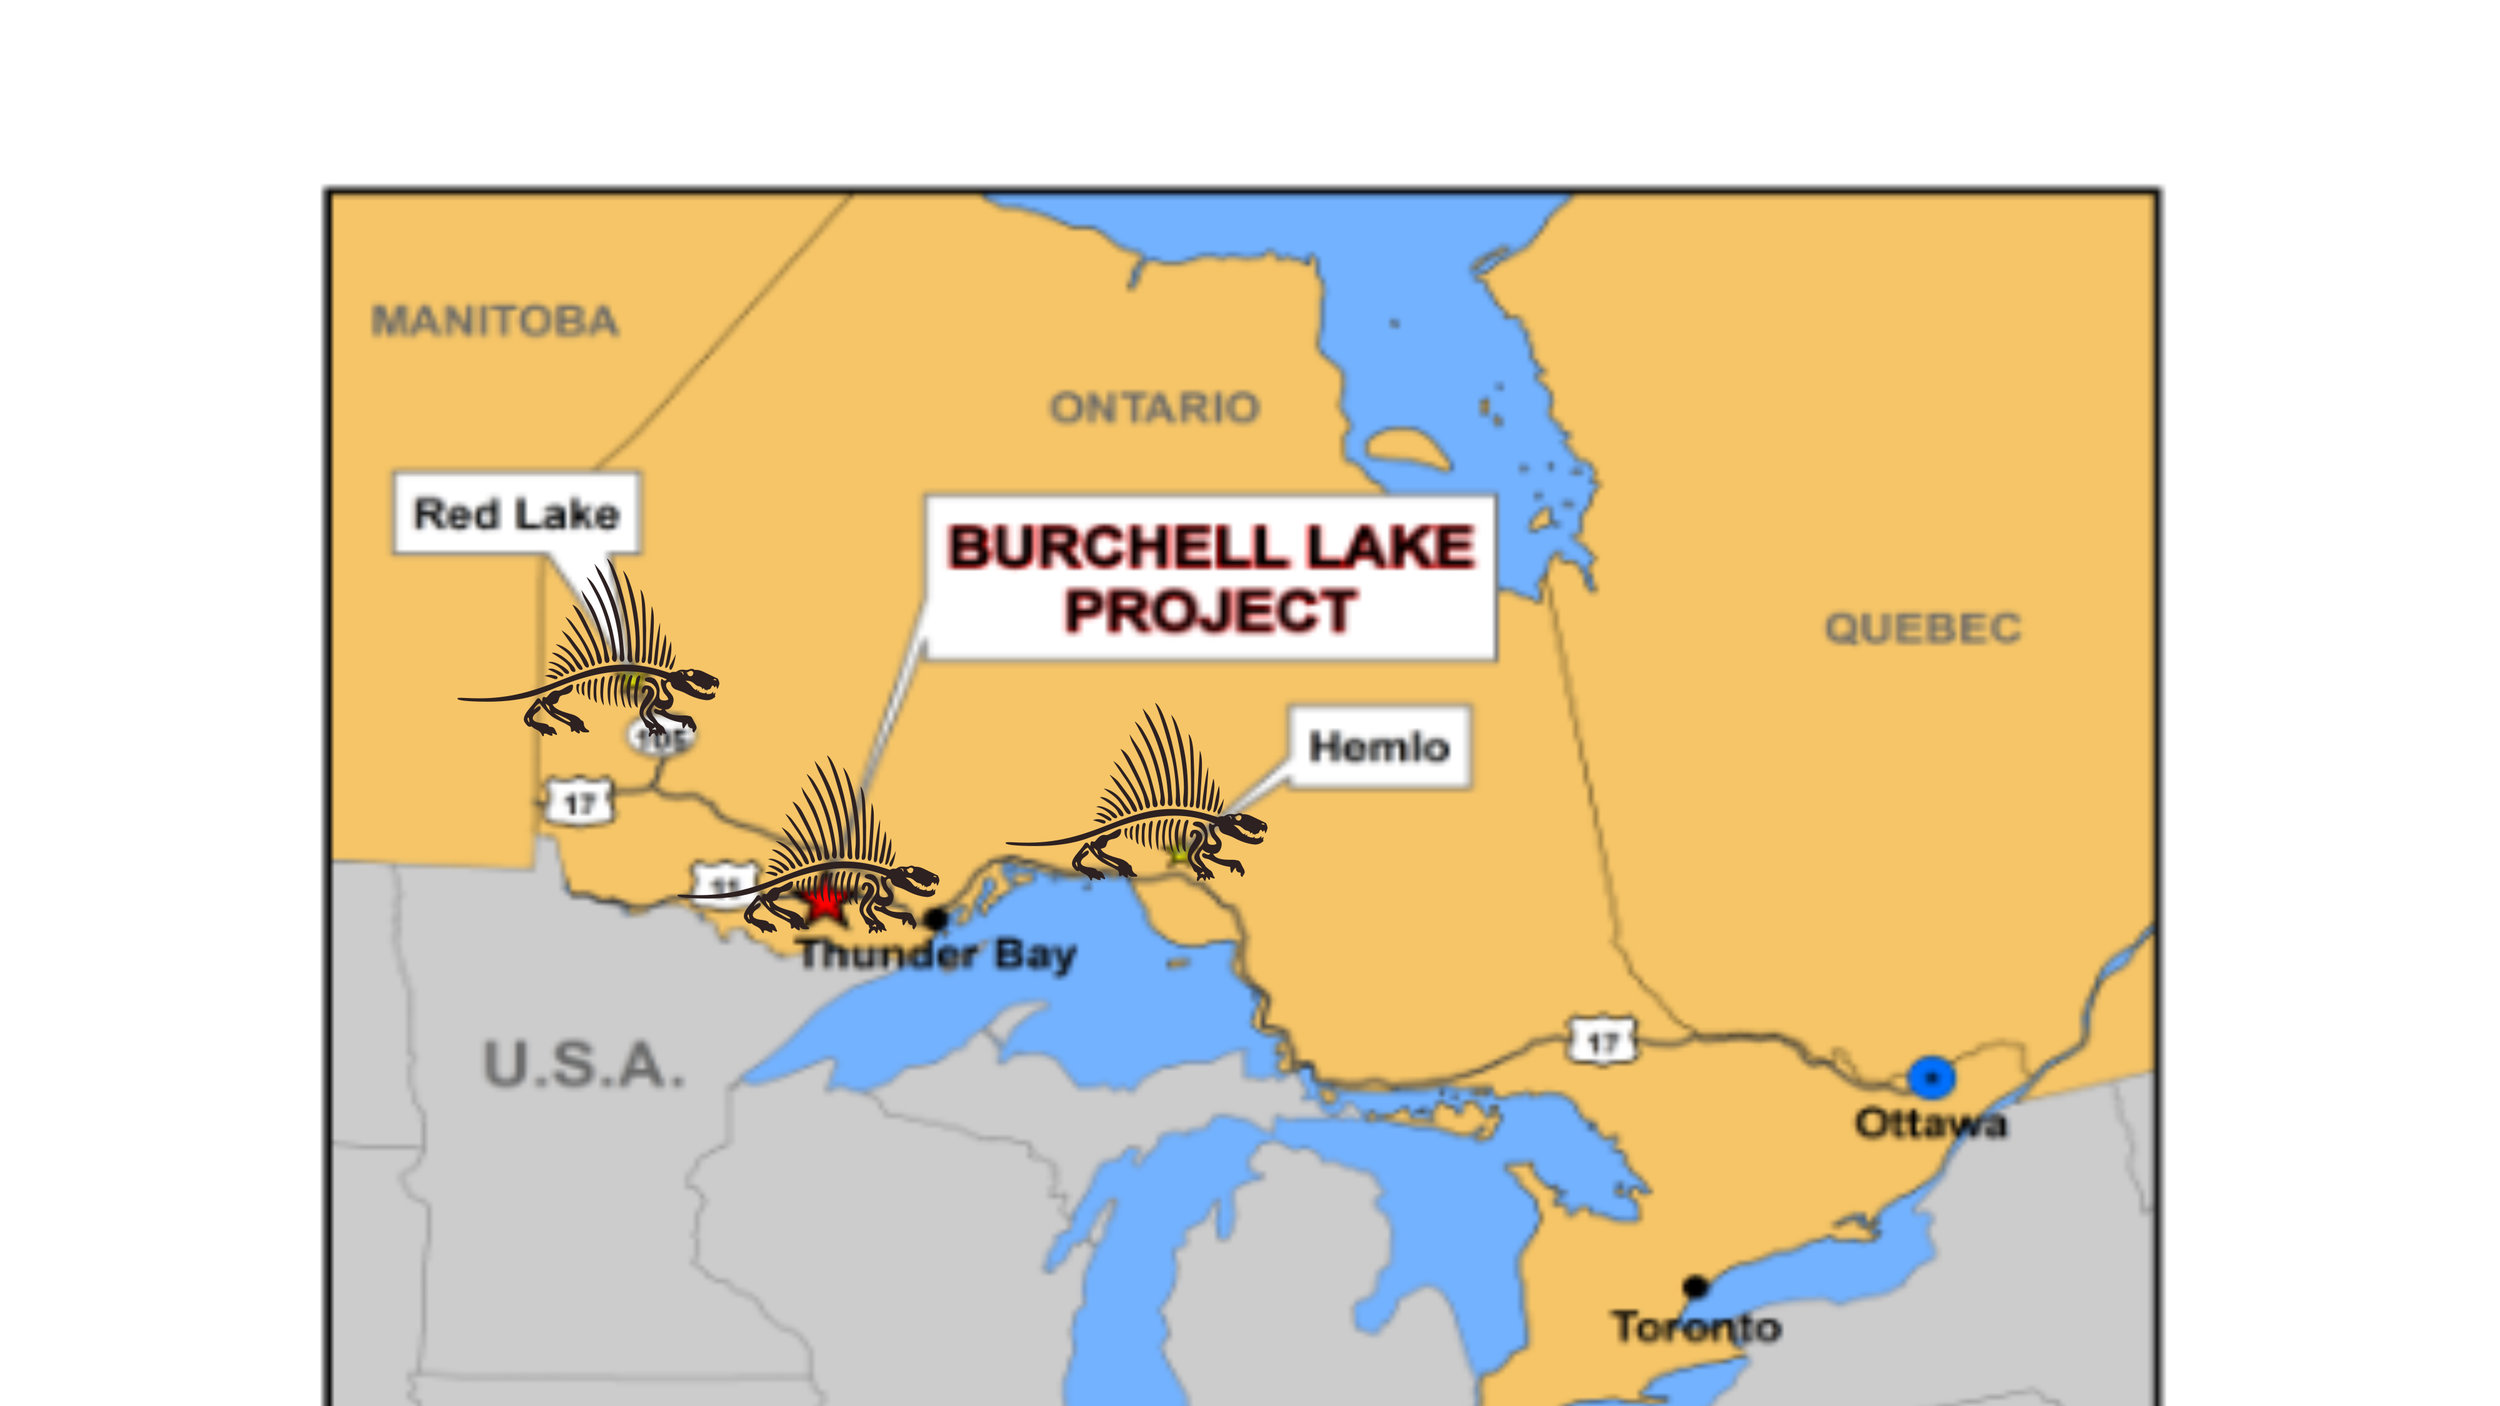 20170918 1030 revised  Proposed Presentation Summary Status Tanager Burchell Lake,.jpg